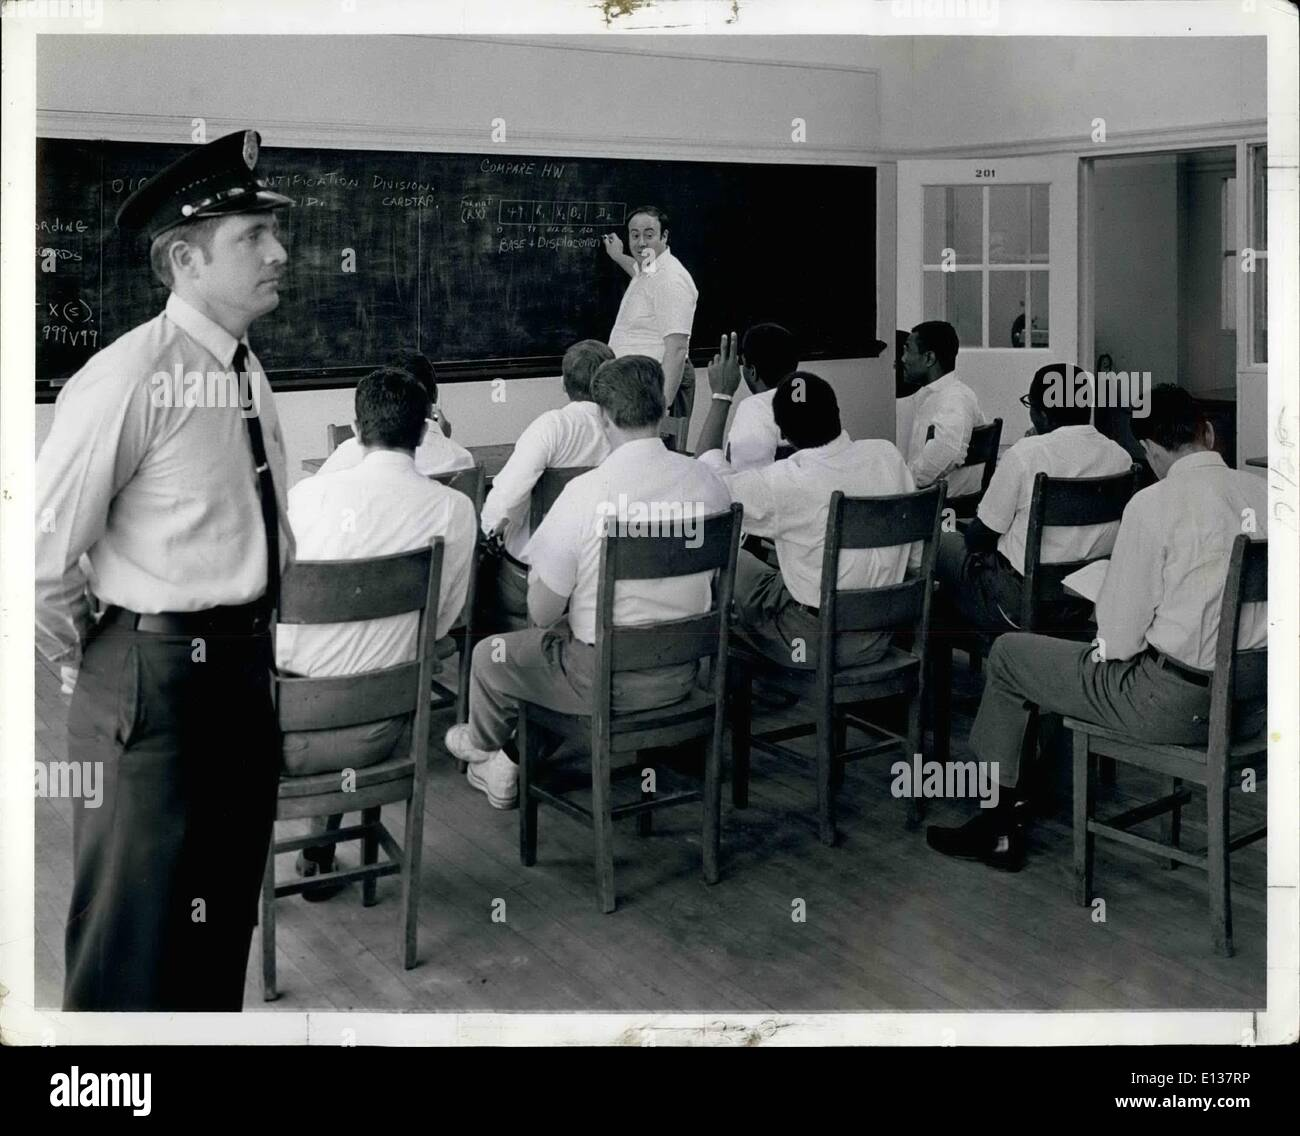 Feb. 29, 2012 - Sing sing convicts trained in computer skills: Ossining, N.Y. - Correction officer Joseph D. Cassidy left stan - Stock Image